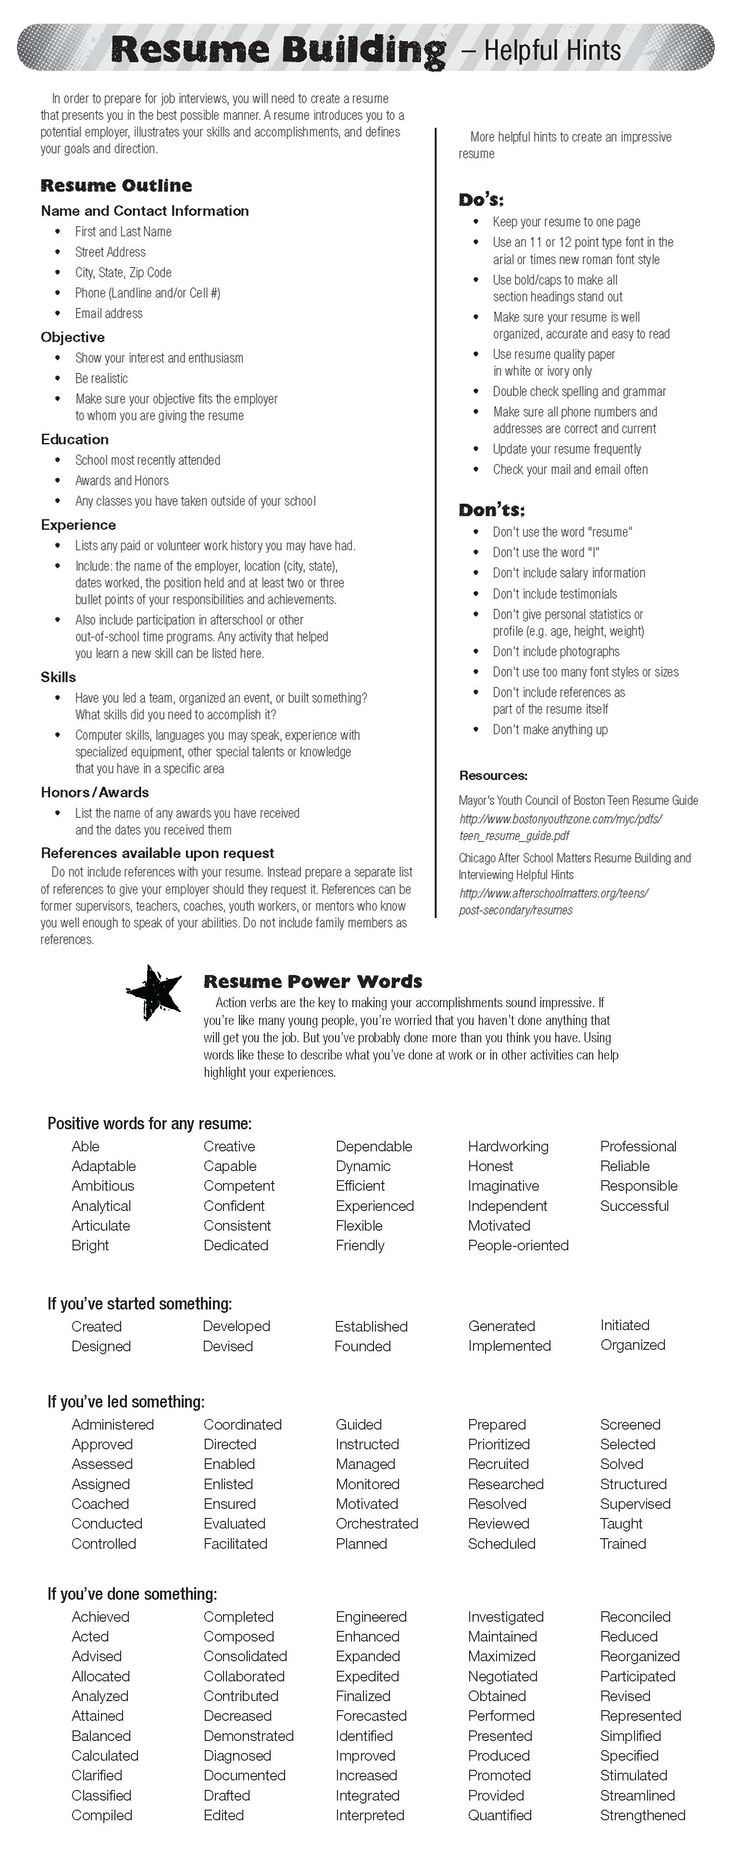 Picnictoimpeachus  Picturesque  Ideas About Resume On Pinterest  Cv Format Resume Cv And  With Extraordinary  Ideas About Resume On Pinterest  Cv Format Resume Cv And Resume Templates With Charming Resume For Medical Field Also Firefighter Resume Templates In Addition Organizational Development Resume And Search Resumes On Indeed As Well As Resume Attributes Additionally Game Developer Resume From Pinterestcom With Picnictoimpeachus  Extraordinary  Ideas About Resume On Pinterest  Cv Format Resume Cv And  With Charming  Ideas About Resume On Pinterest  Cv Format Resume Cv And Resume Templates And Picturesque Resume For Medical Field Also Firefighter Resume Templates In Addition Organizational Development Resume From Pinterestcom